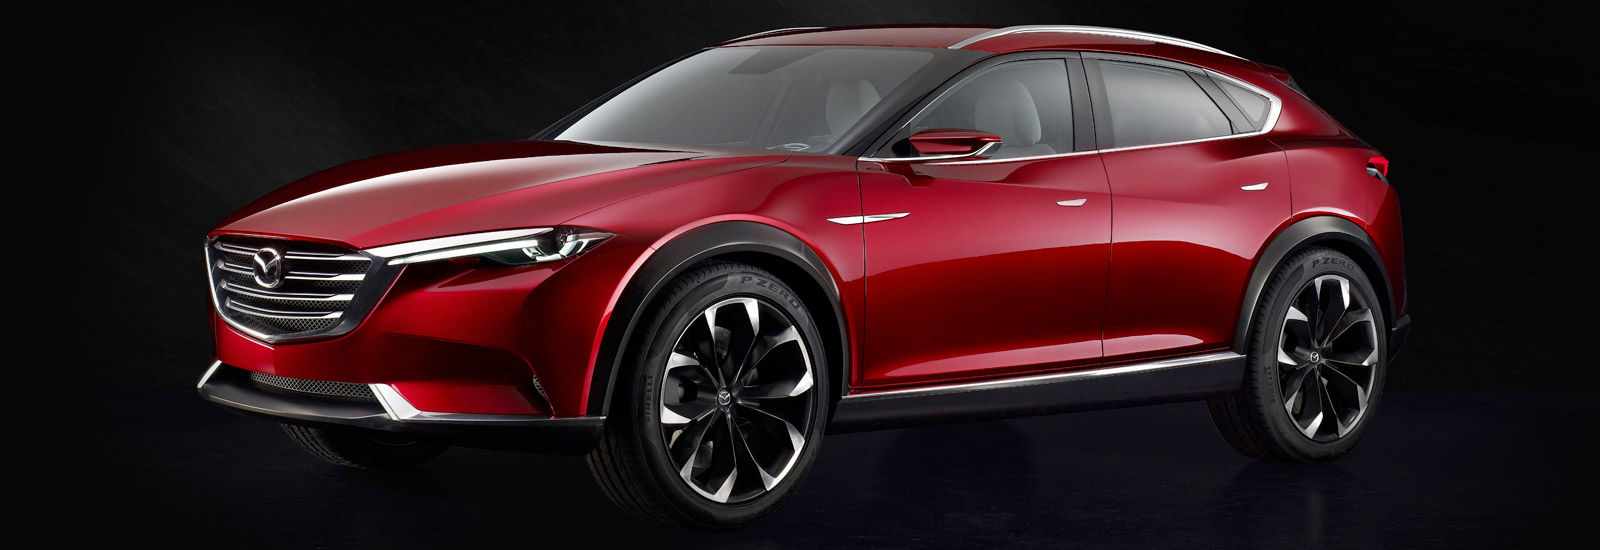 2016 mazda cx 9 suv price specs release date carwow. Black Bedroom Furniture Sets. Home Design Ideas